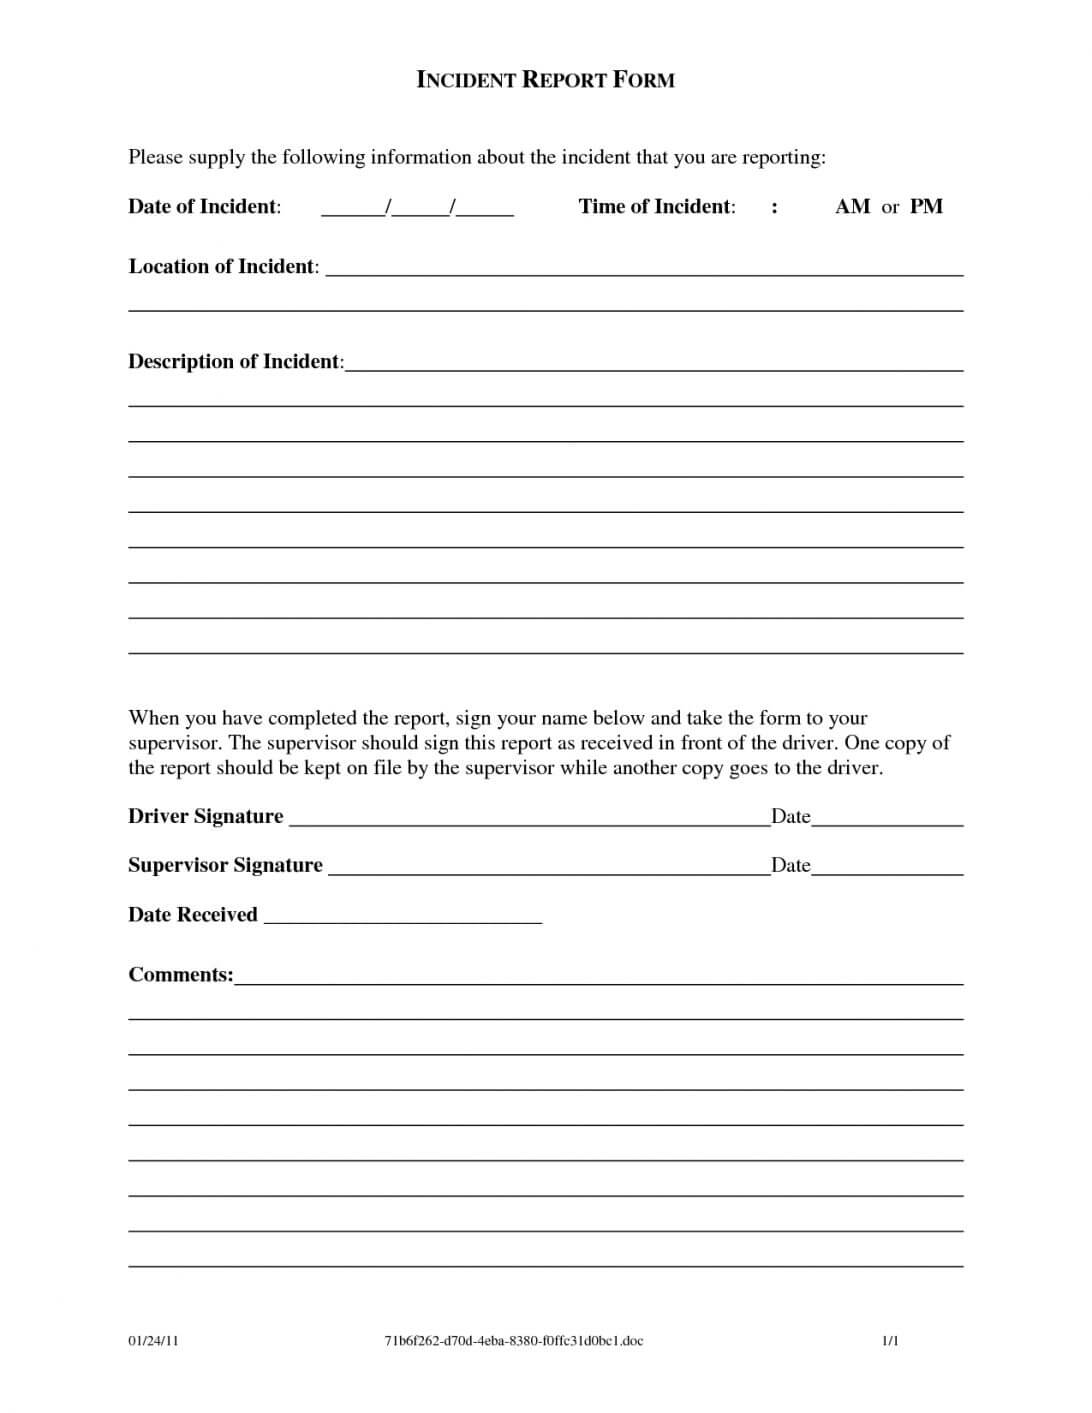 General Incident Report Form Template Australia Pdf Qld Free Pertaining To Incident Report Form Template Doc